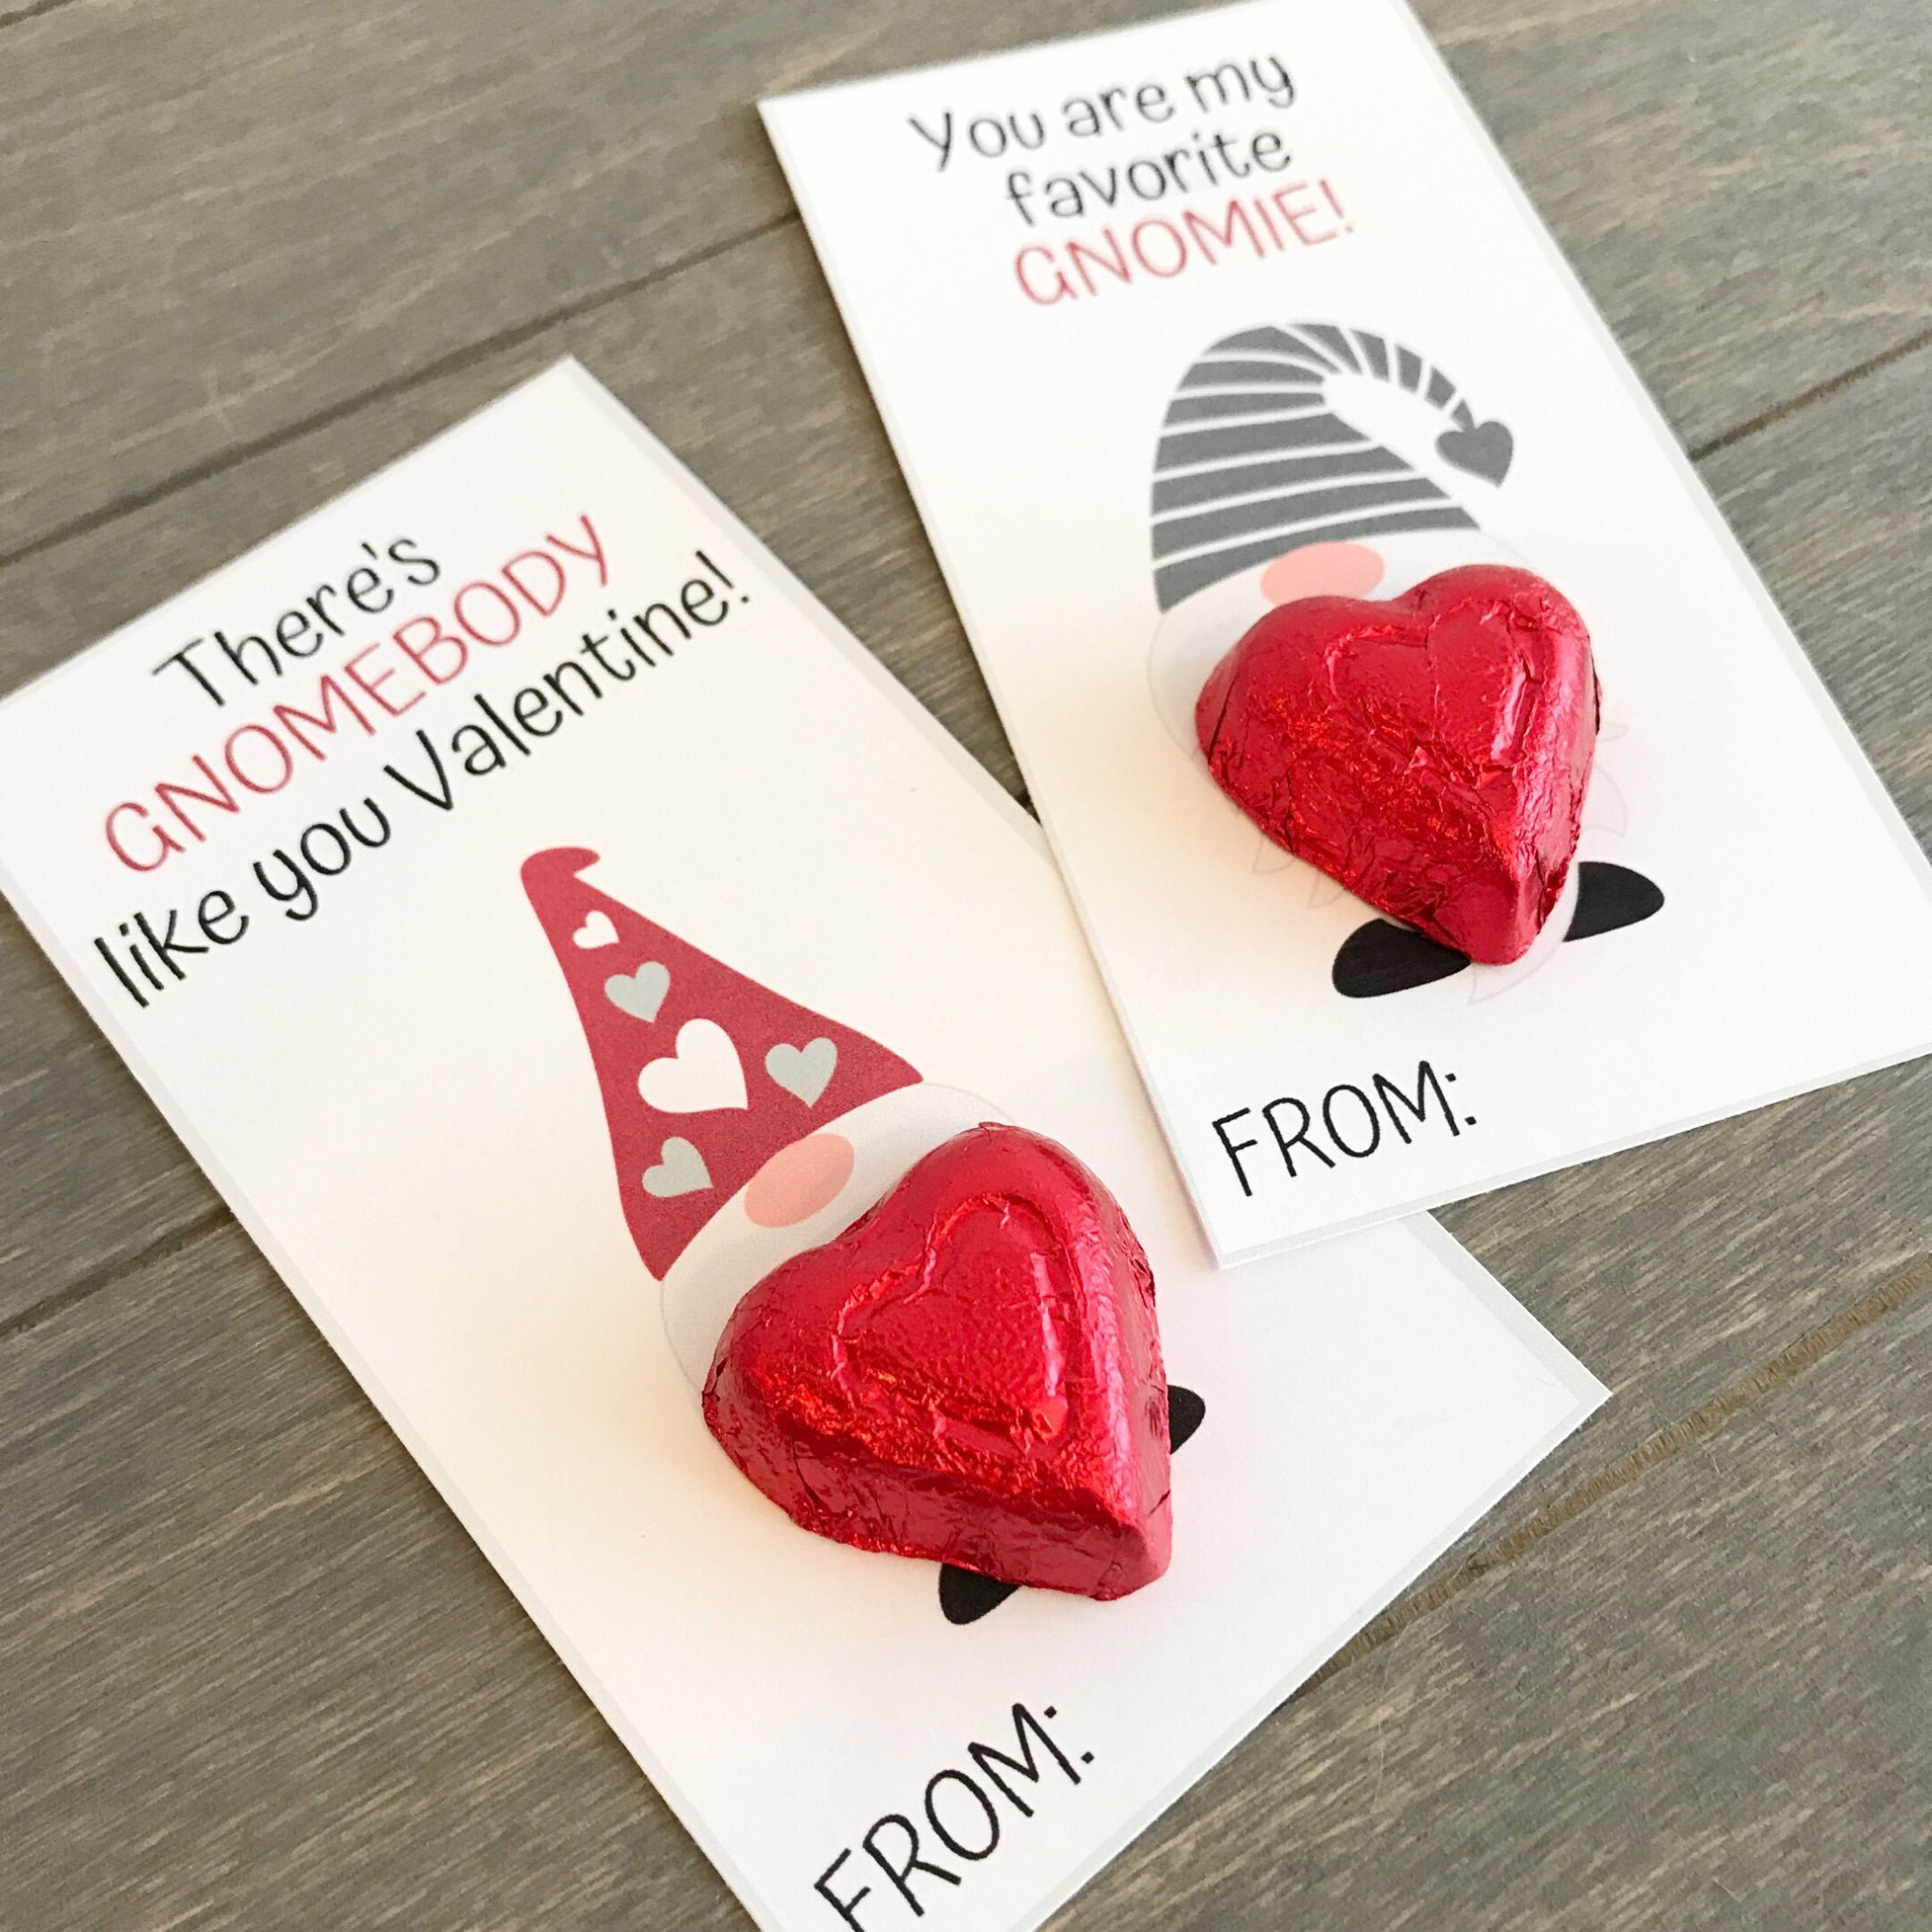 Free Printable Gnome Valentine S Day Cards For Kids There S Gnome Body Like You Valentine Gnom Valentines For Kids Valentine Gifts For Kids Valentines School